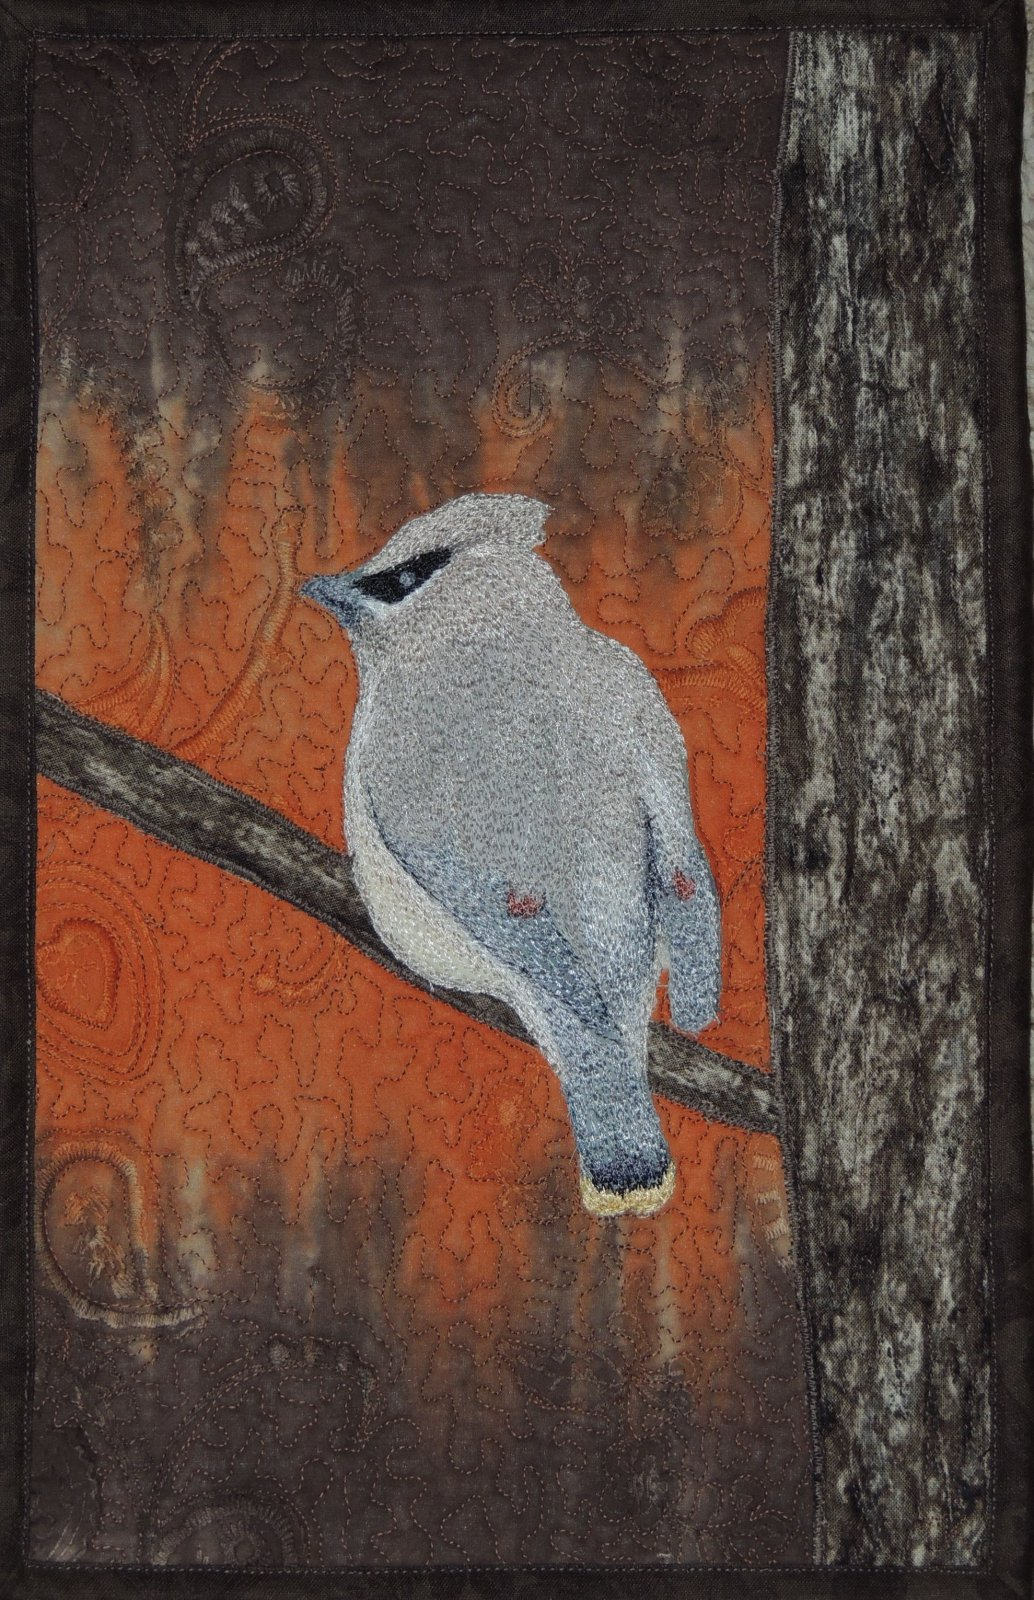 CEDAR WAXWING STITCHED PHOTO ART CARD